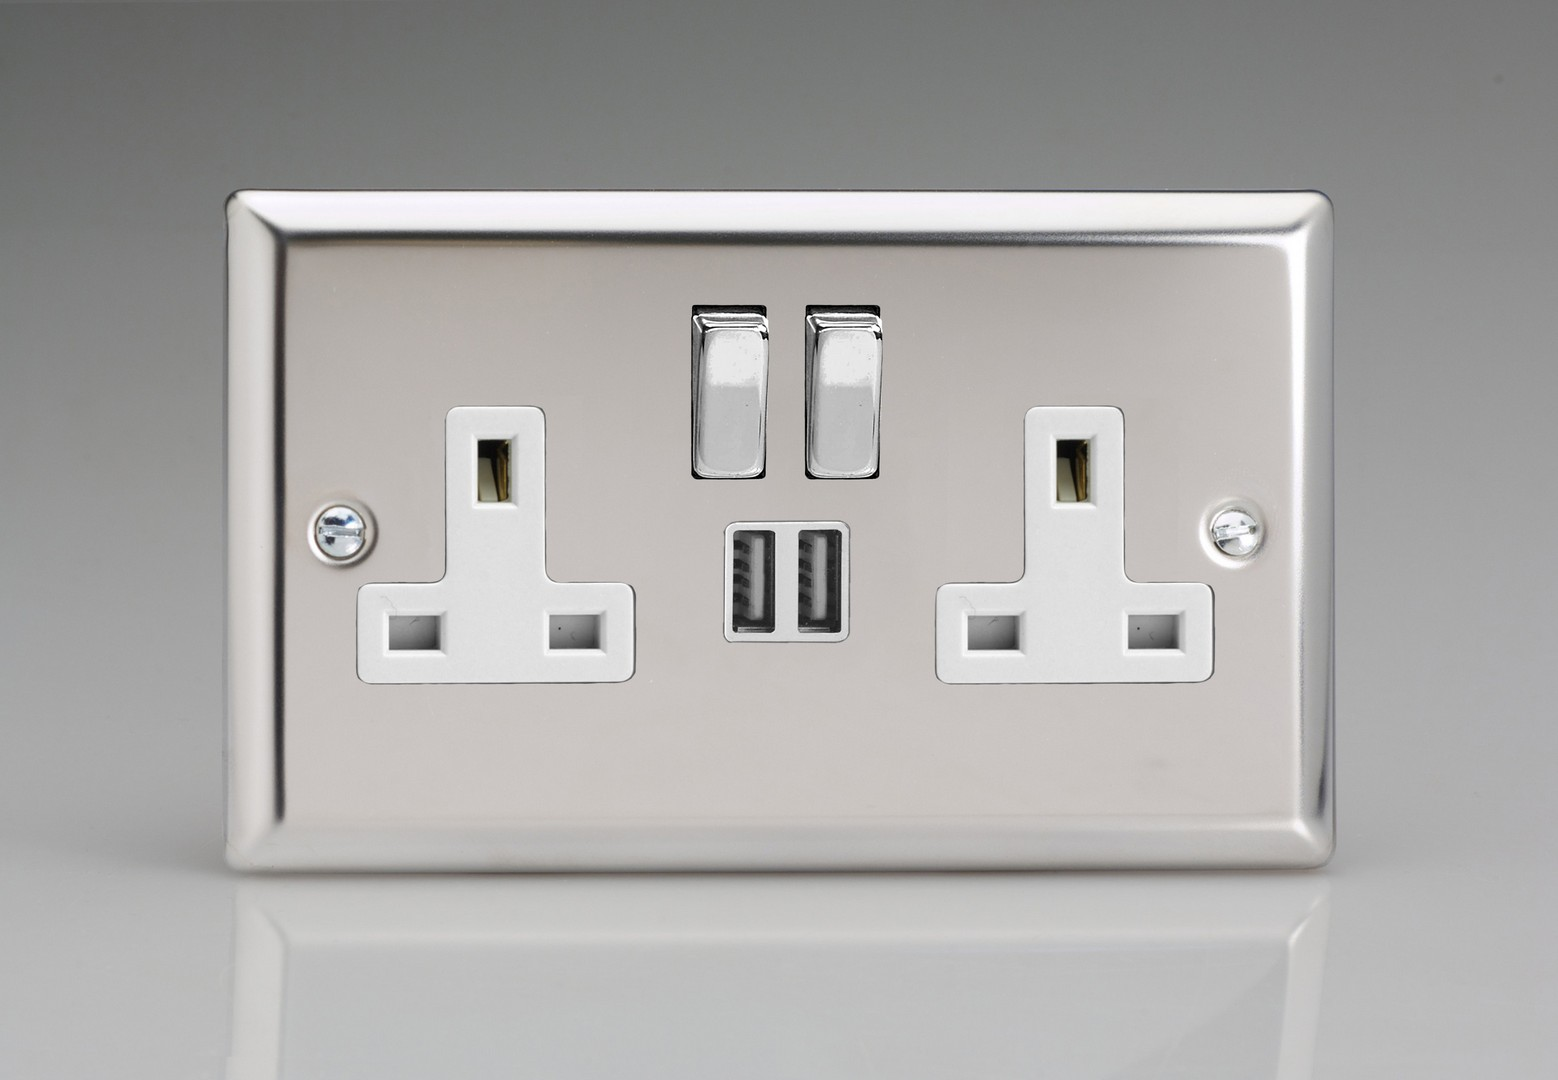 Varilight V Dim Dimmer Series For Incandescent Lighting 2 Way Switch Double Pole 13a Socket Usb